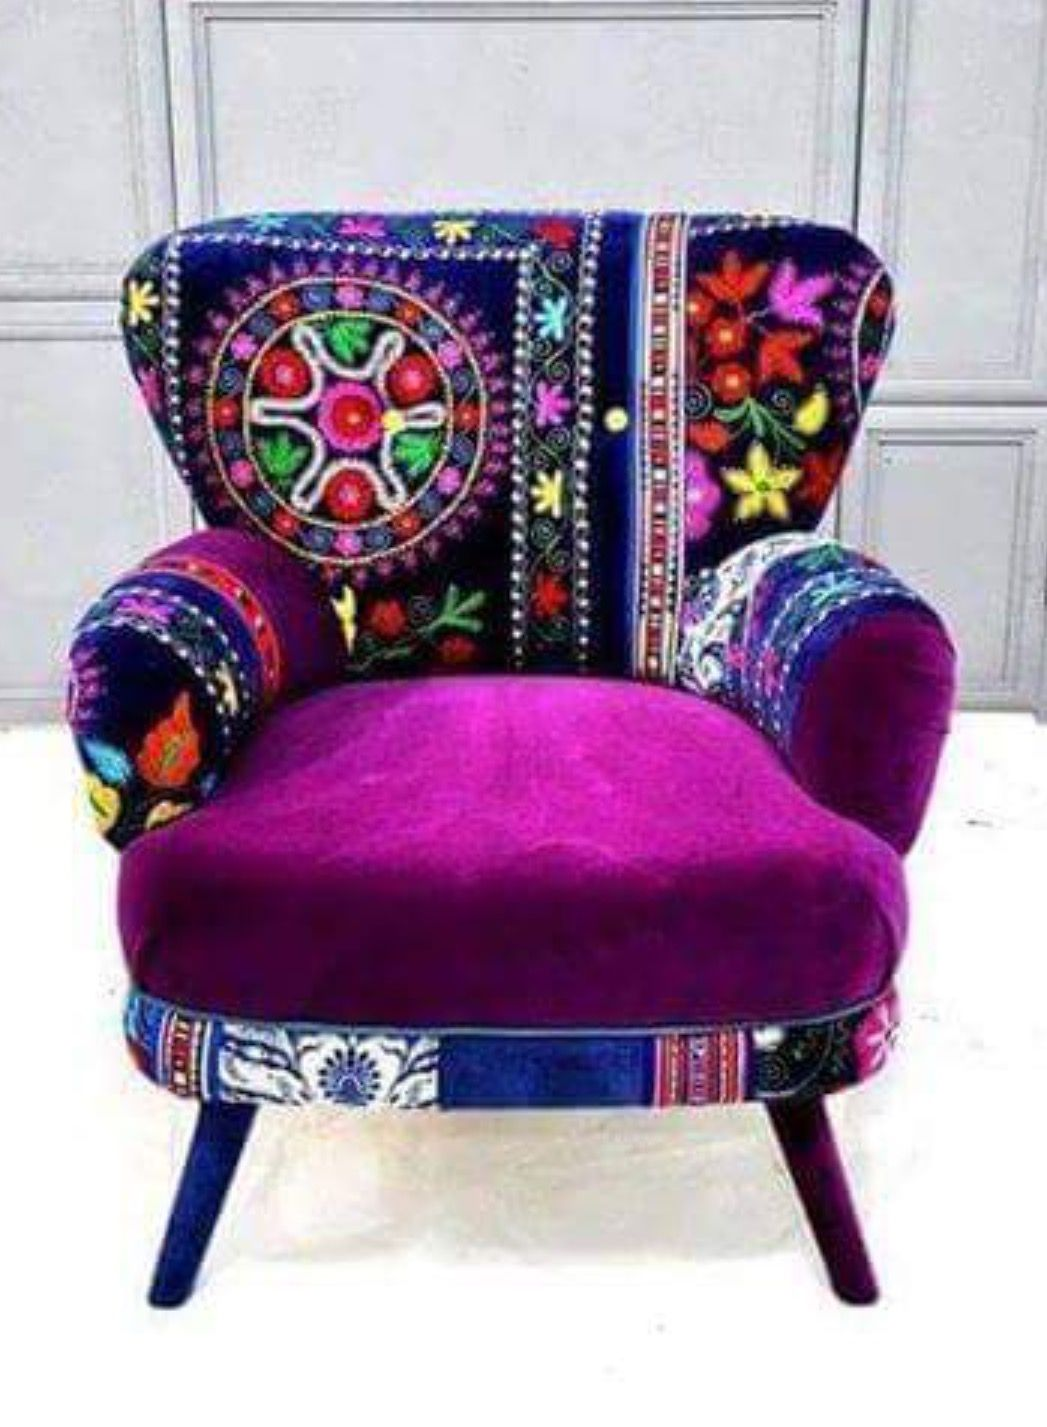 Purple patterned chair  Eclectic Interiors and